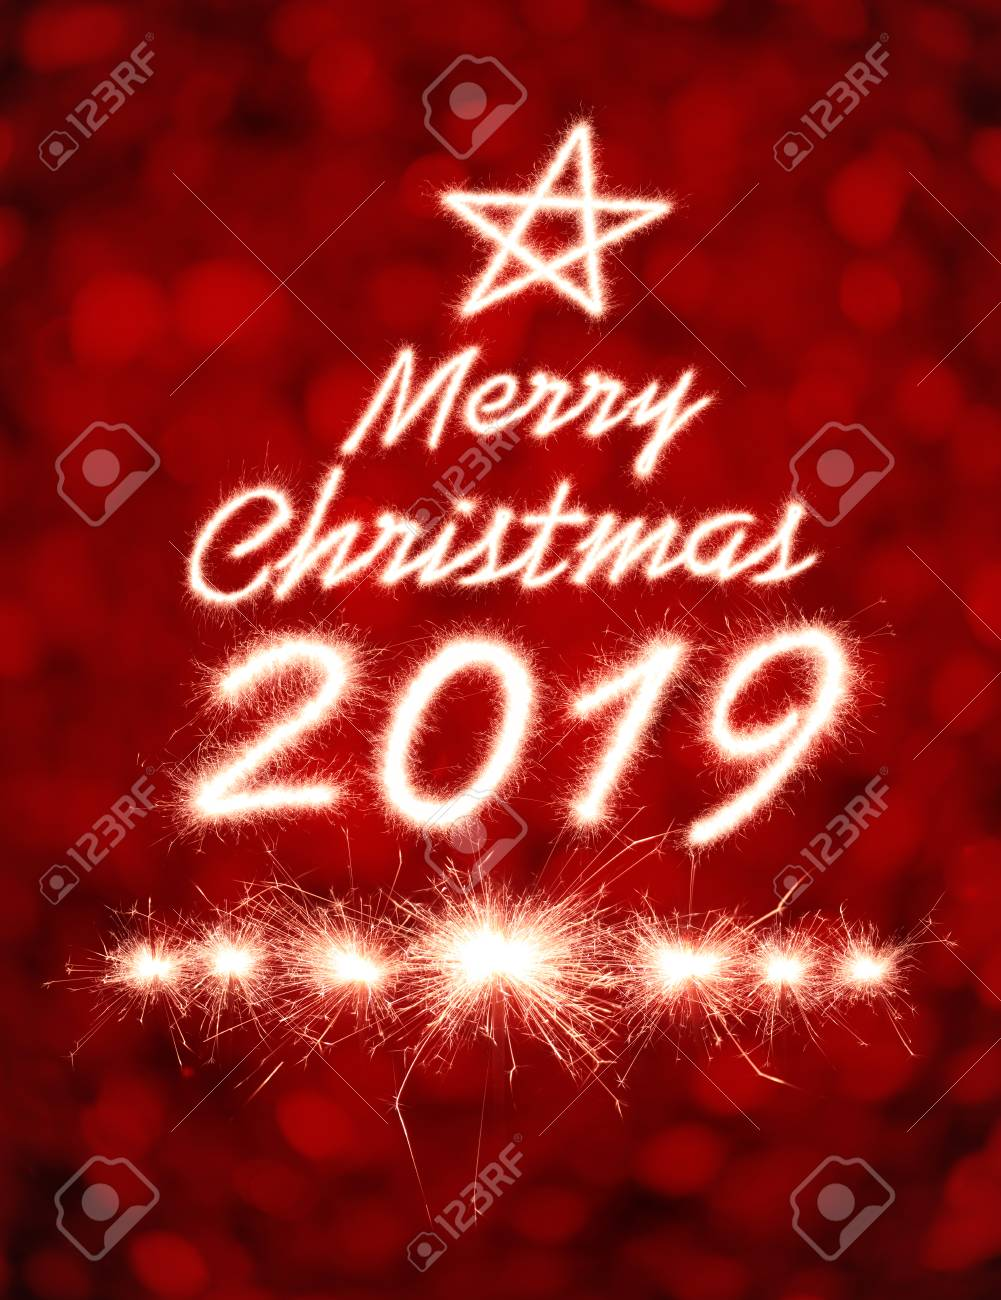 Merry Christmas Images 2019.Merry Christmas 2019 Written With Sparkle Firework Over Bokeh